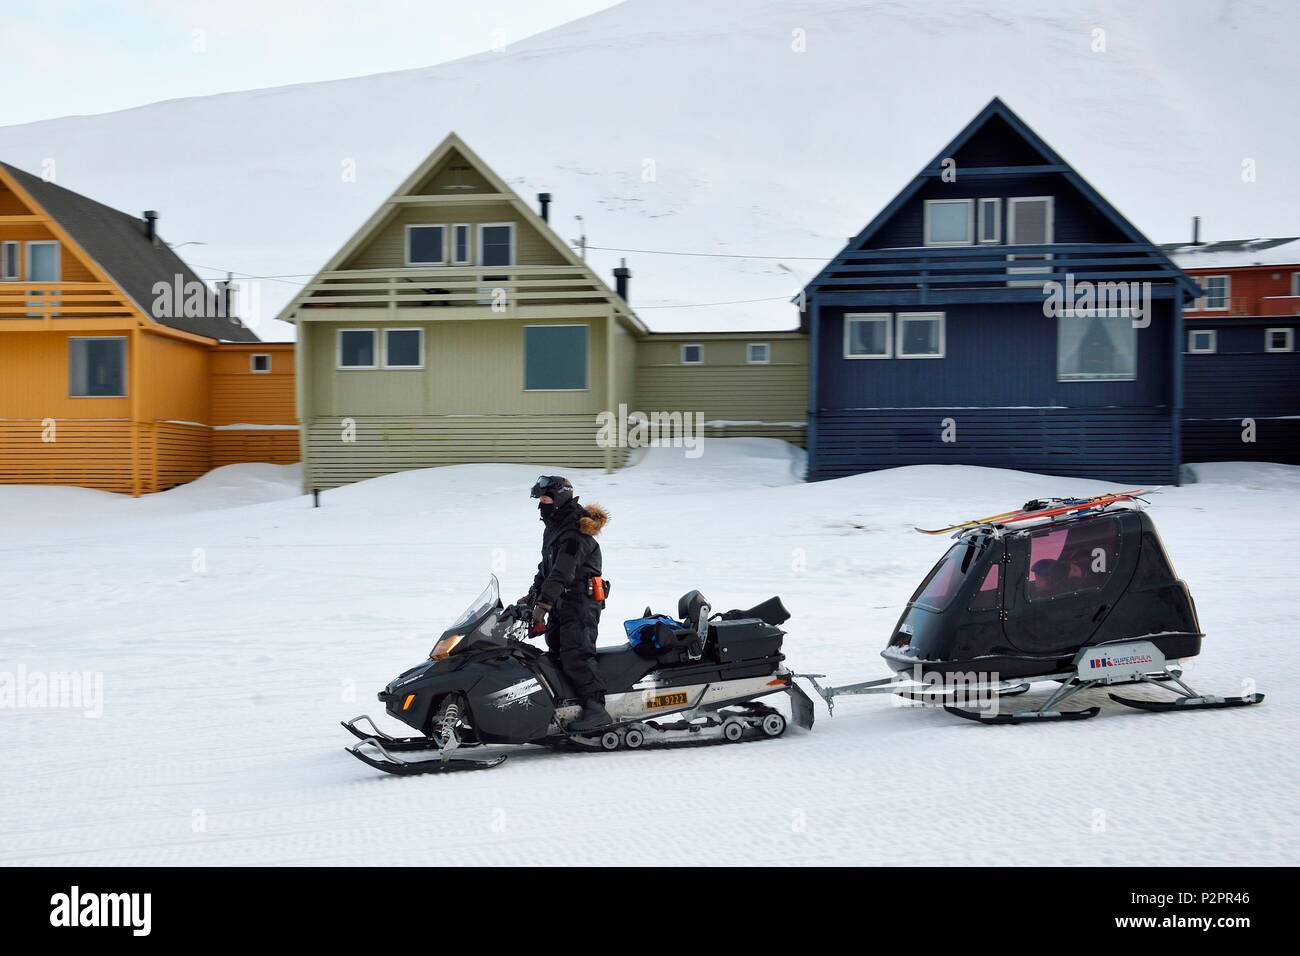 Norway, Svalbard, Spitzbergen, Longyearbyen, snowmobile with the kids in the closed trailer - Stock Image